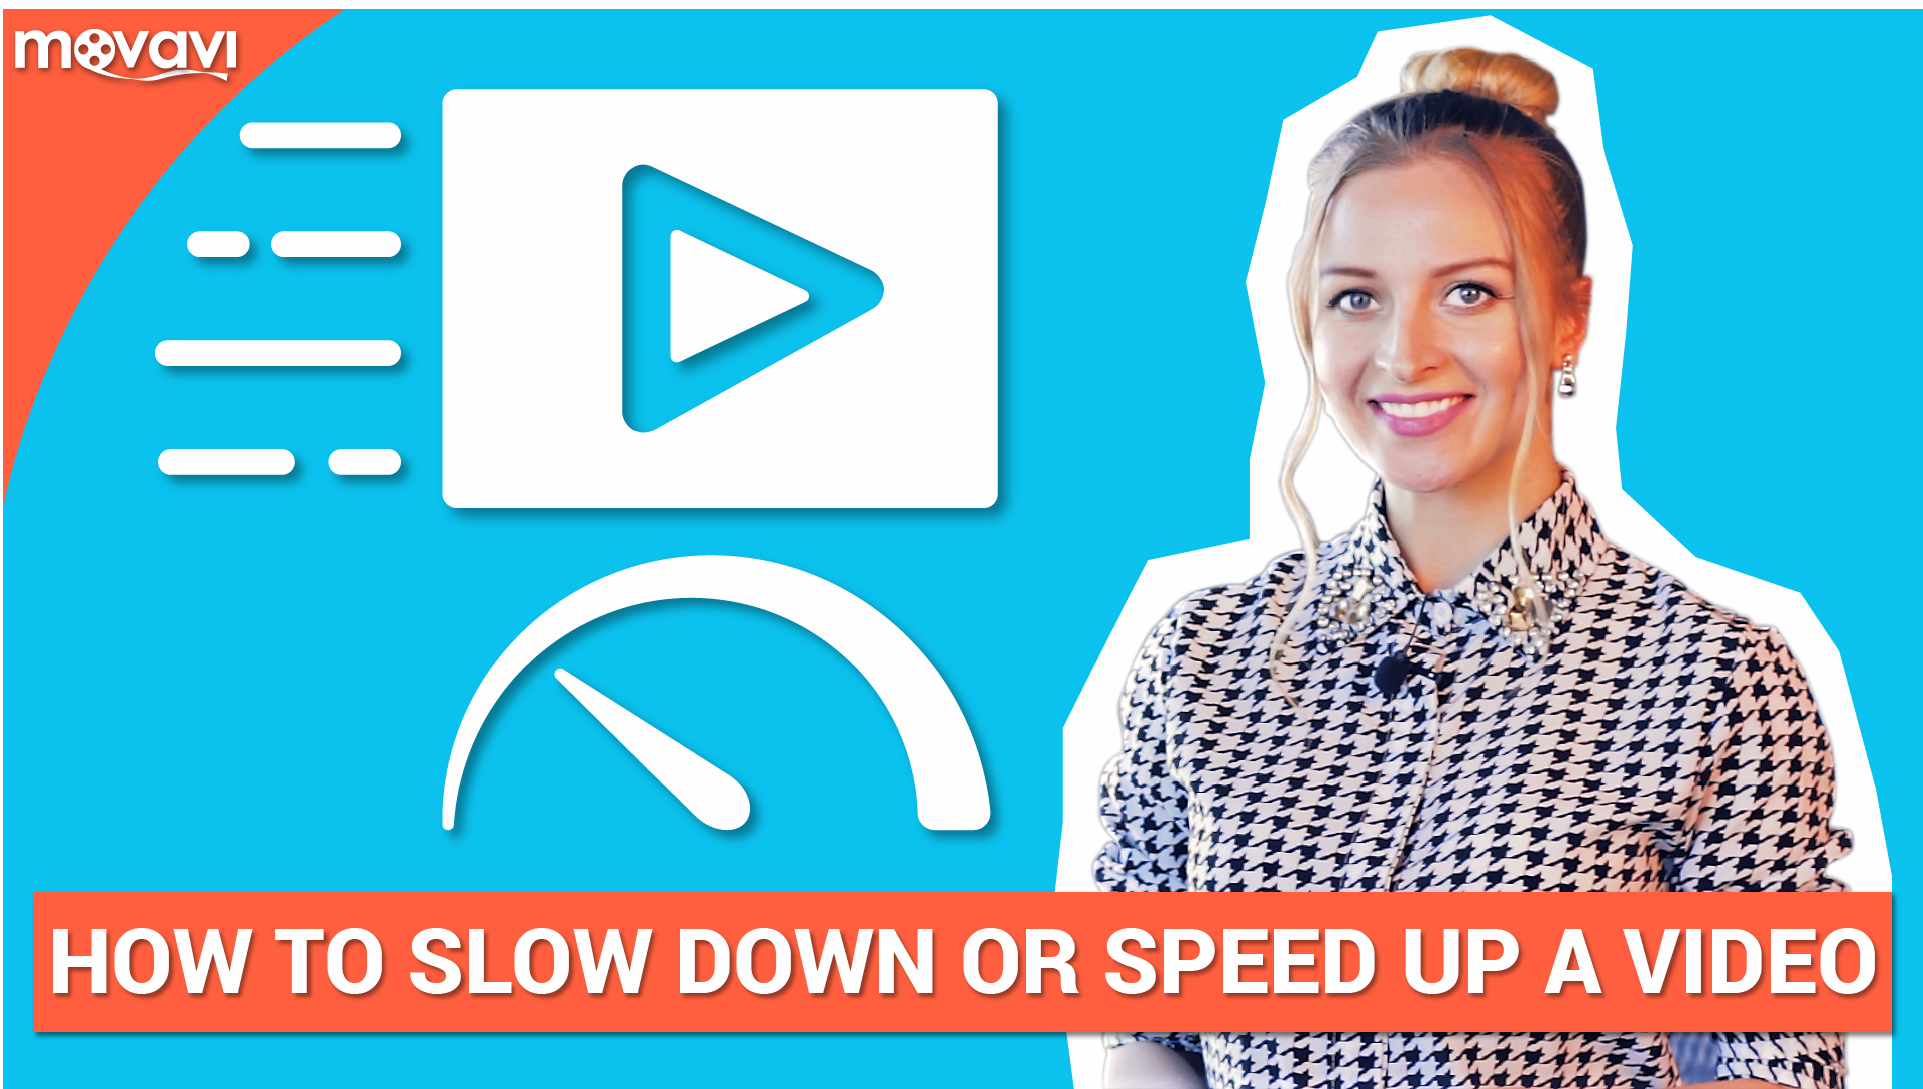 How to slow down or speed up a video